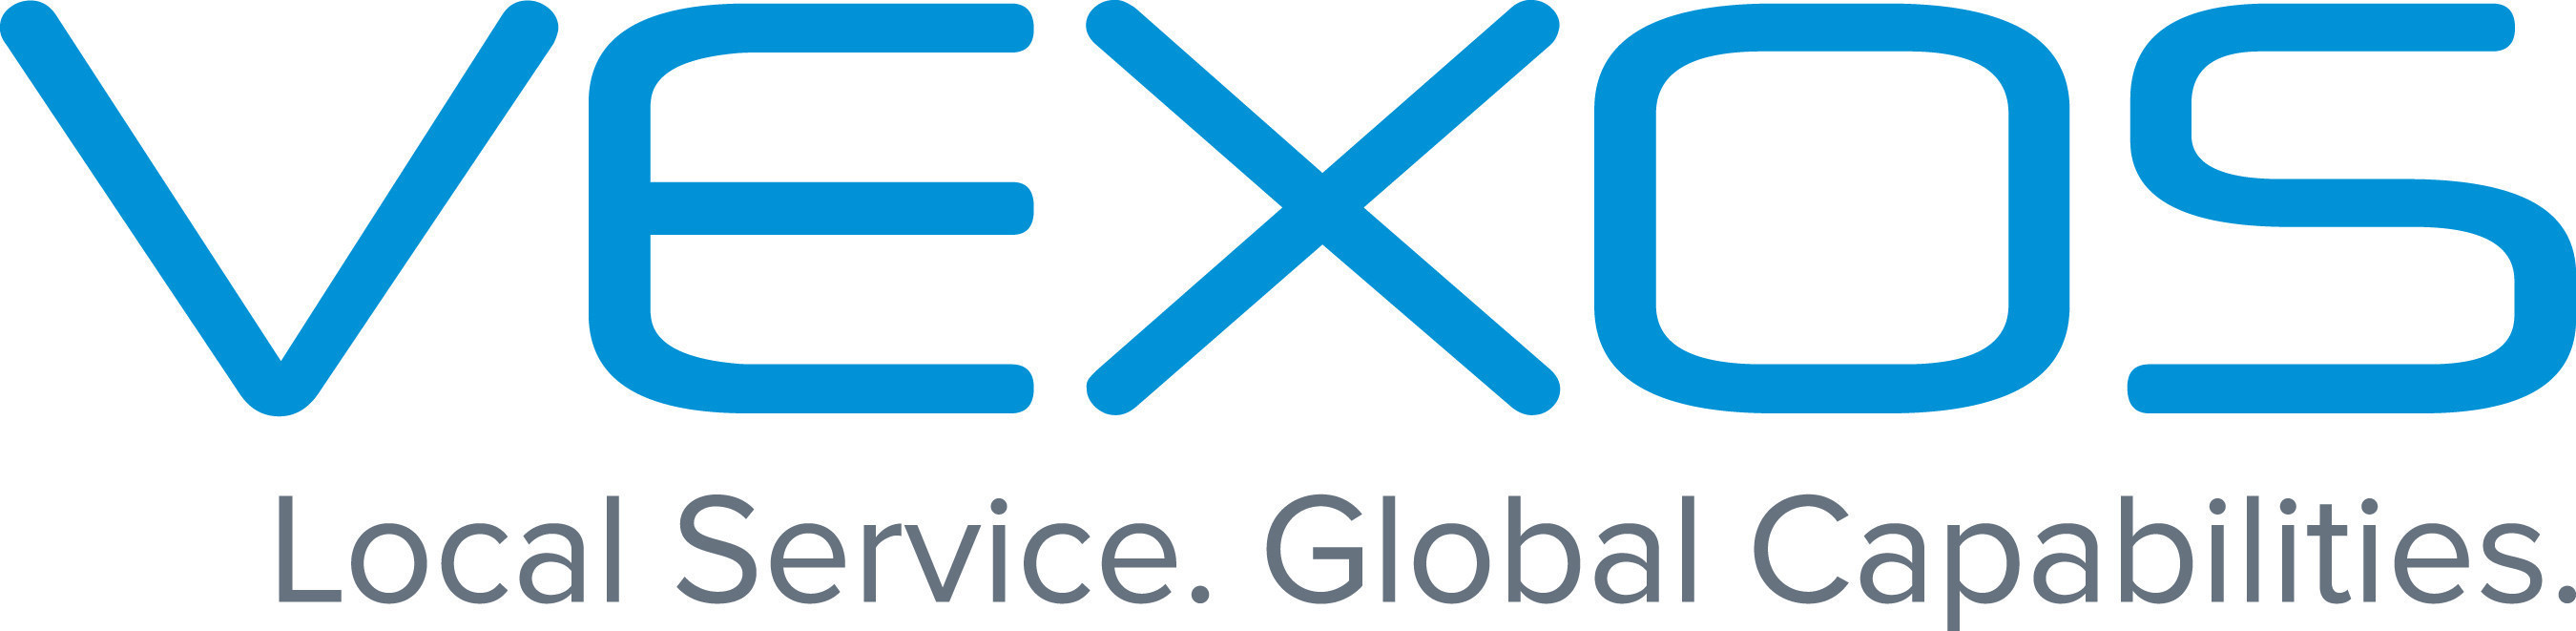 Vexos appoints Michael Pisch as new Chief Financial Officer